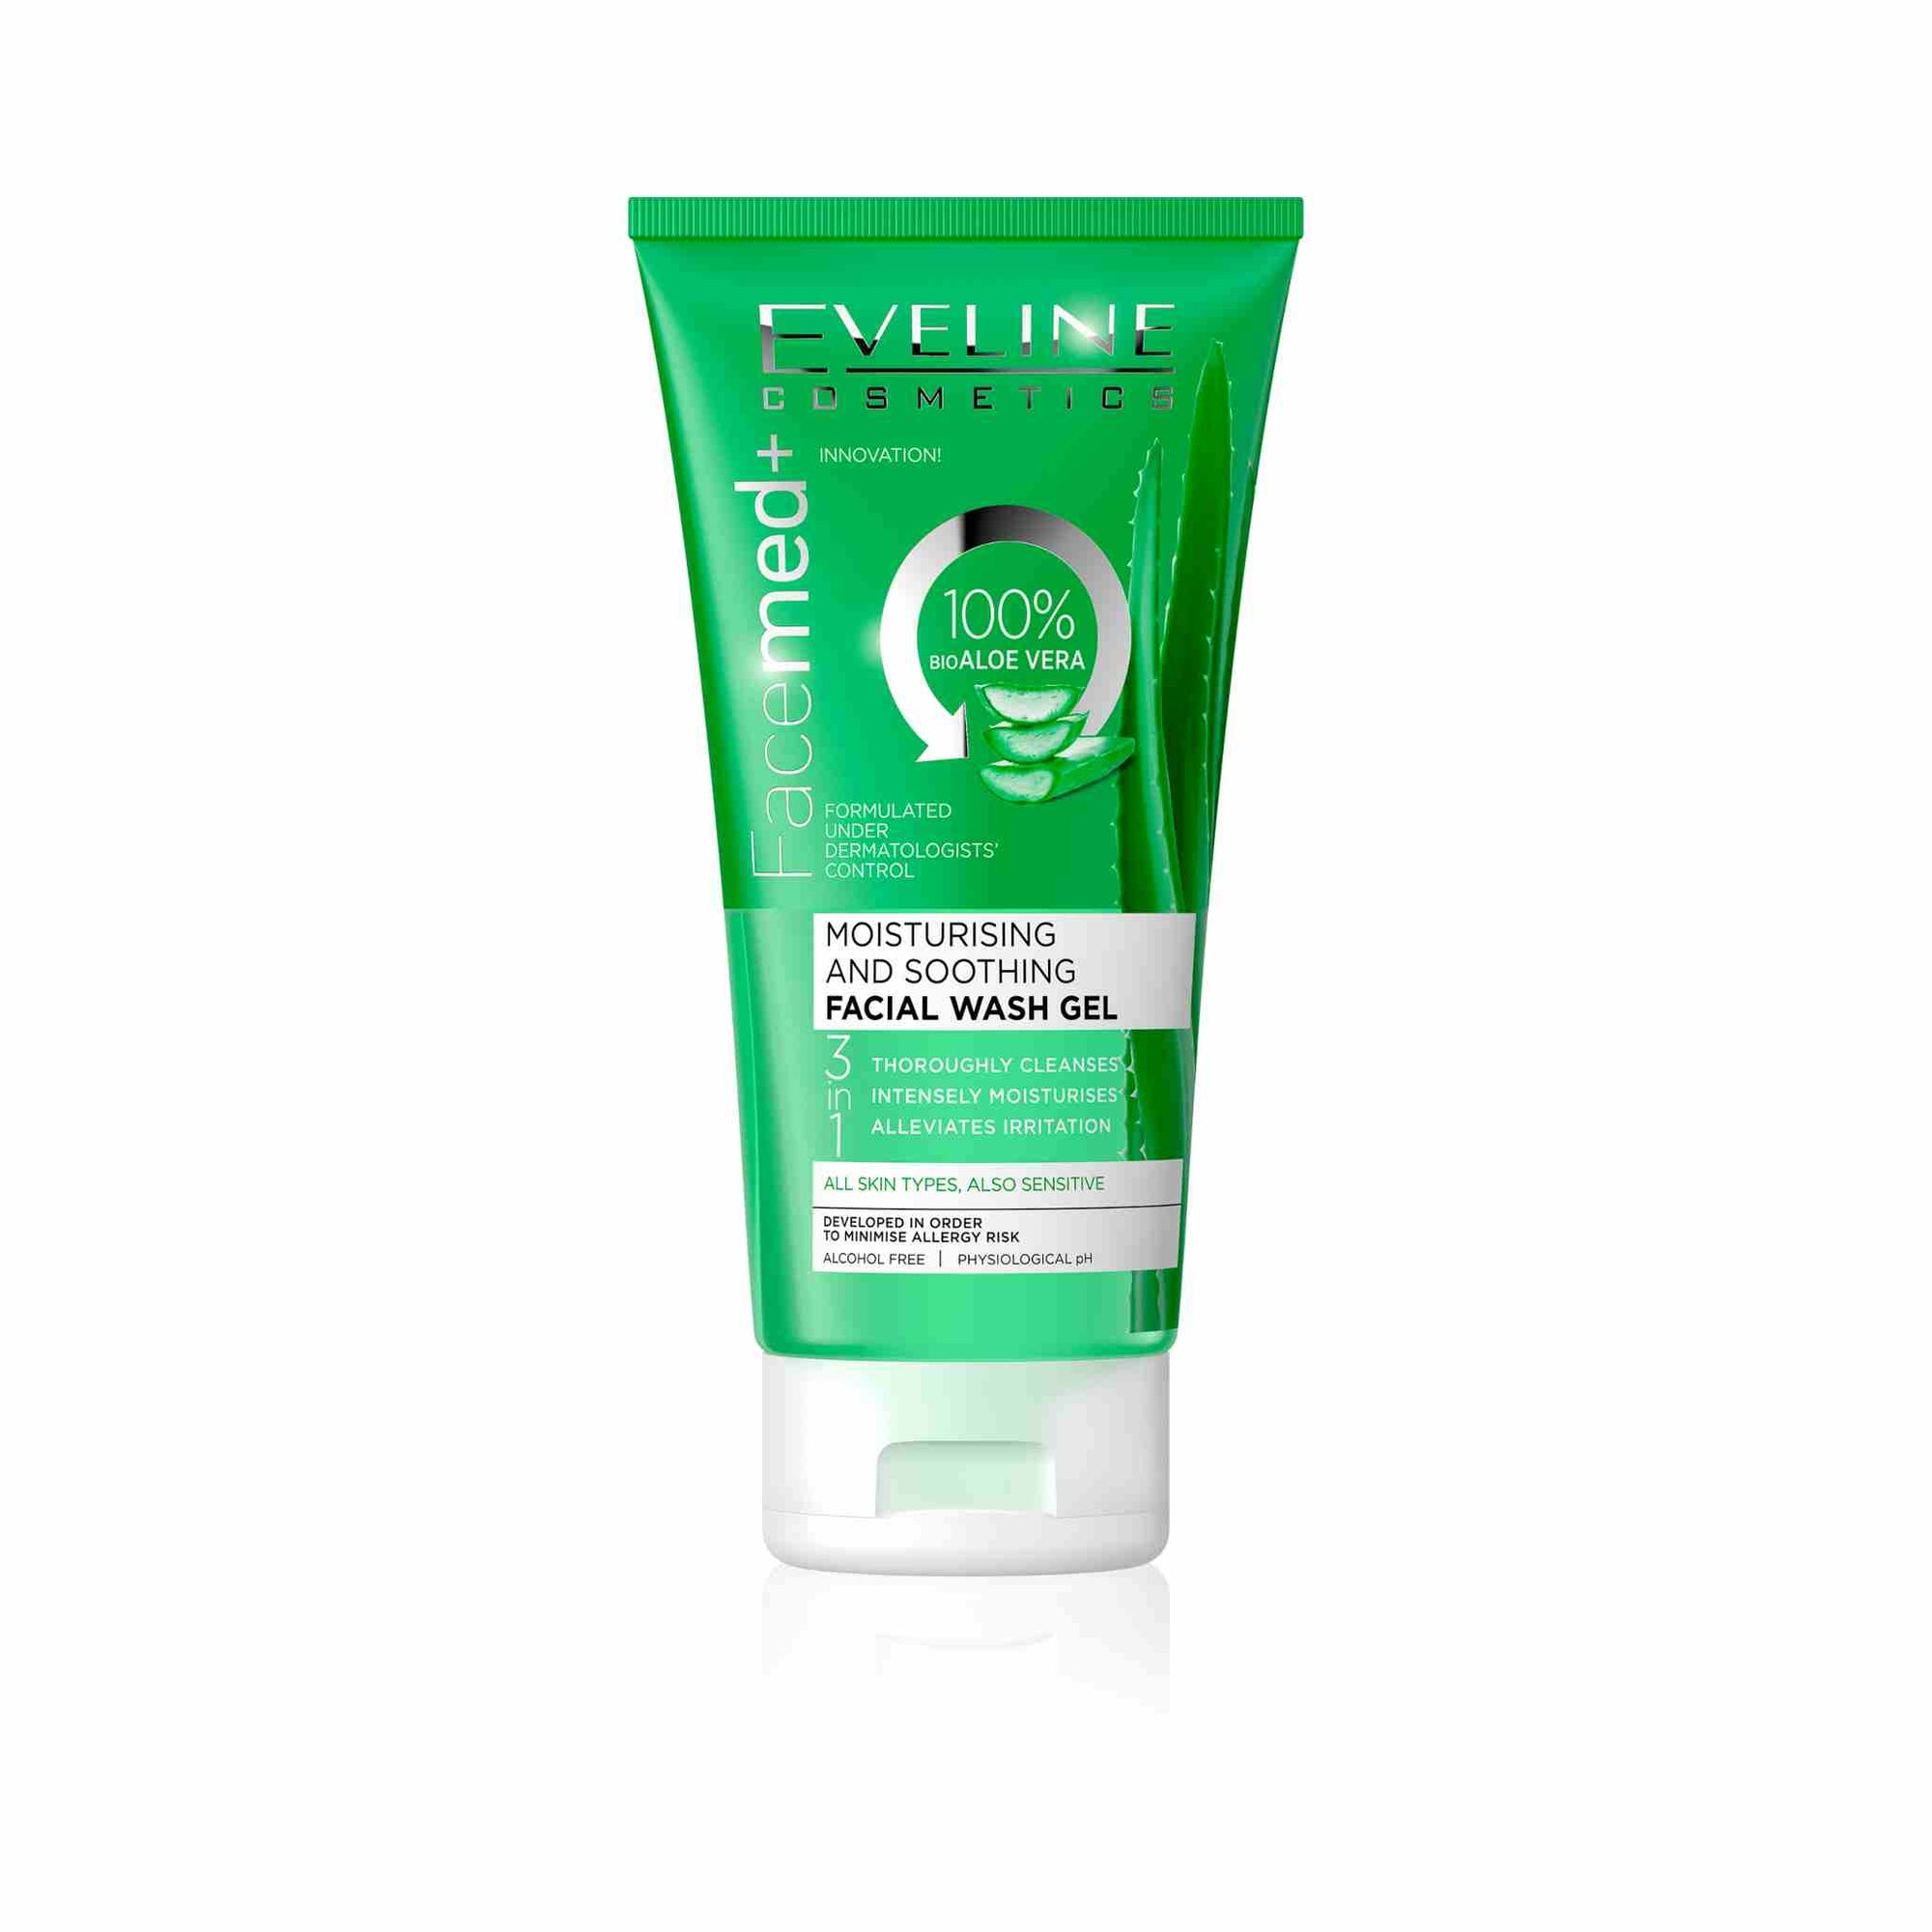 Moisturizing and Soothing Aloe Vera Facial Wash Gel